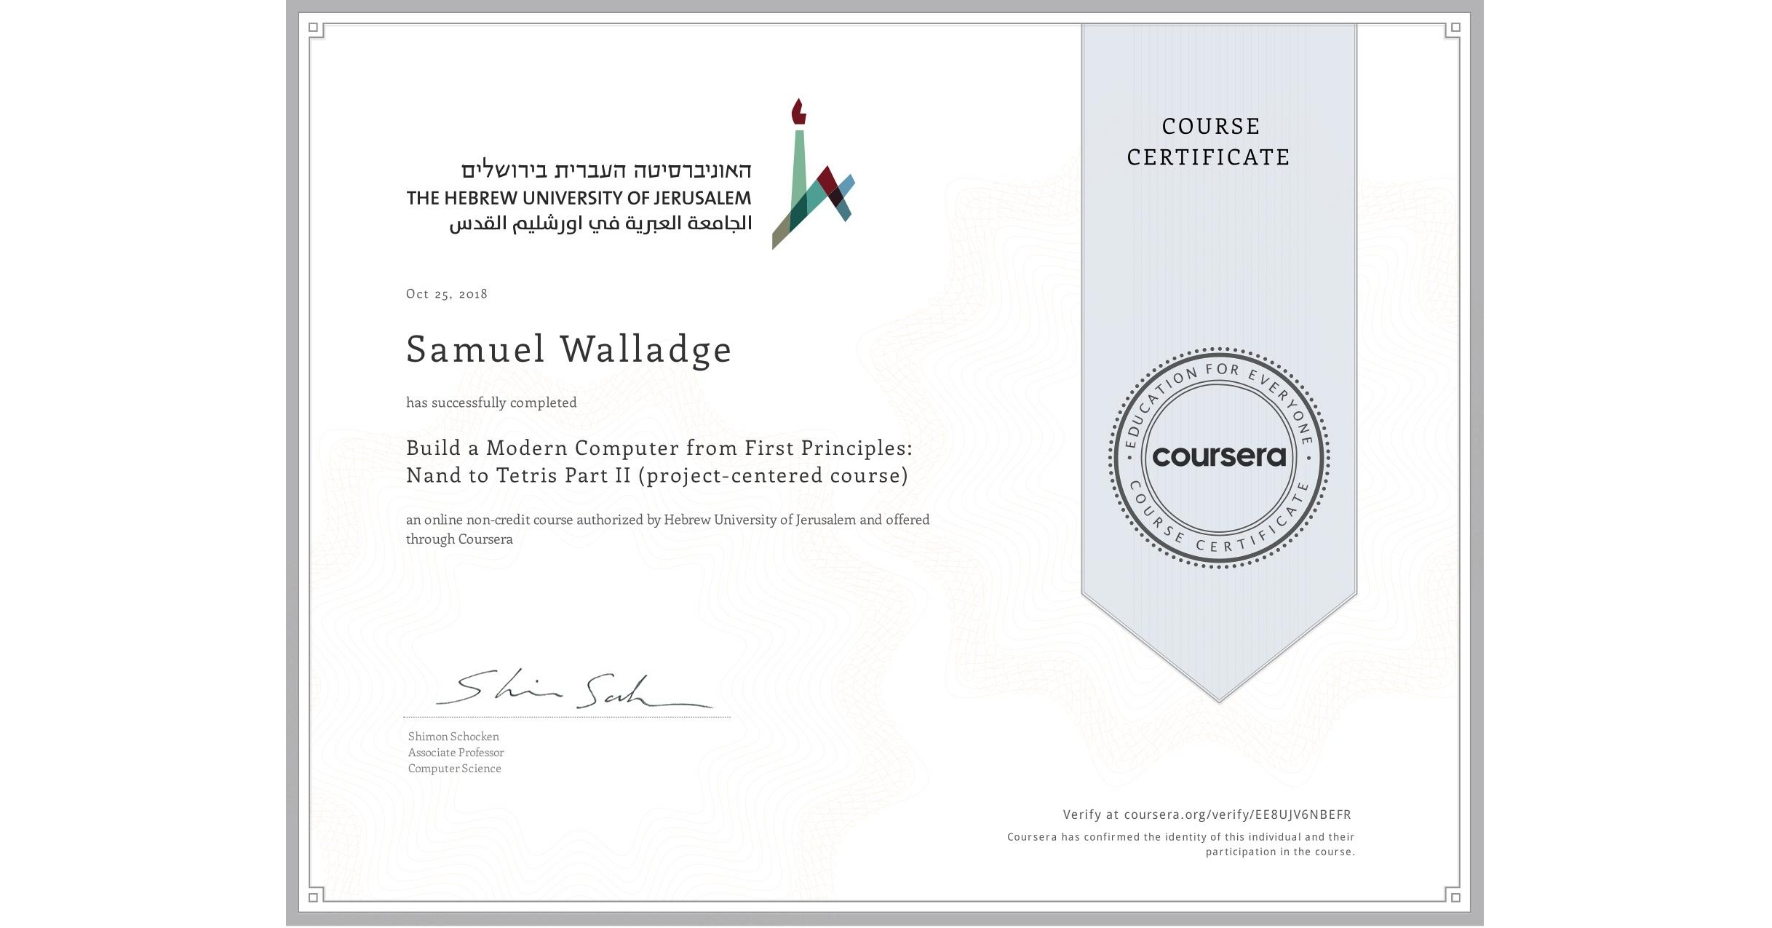 View certificate for Samuel Walladge, Build a Modern Computer from First Principles: Nand to Tetris Part II (project-centered course), an online non-credit course authorized by Hebrew University of Jerusalem and offered through Coursera